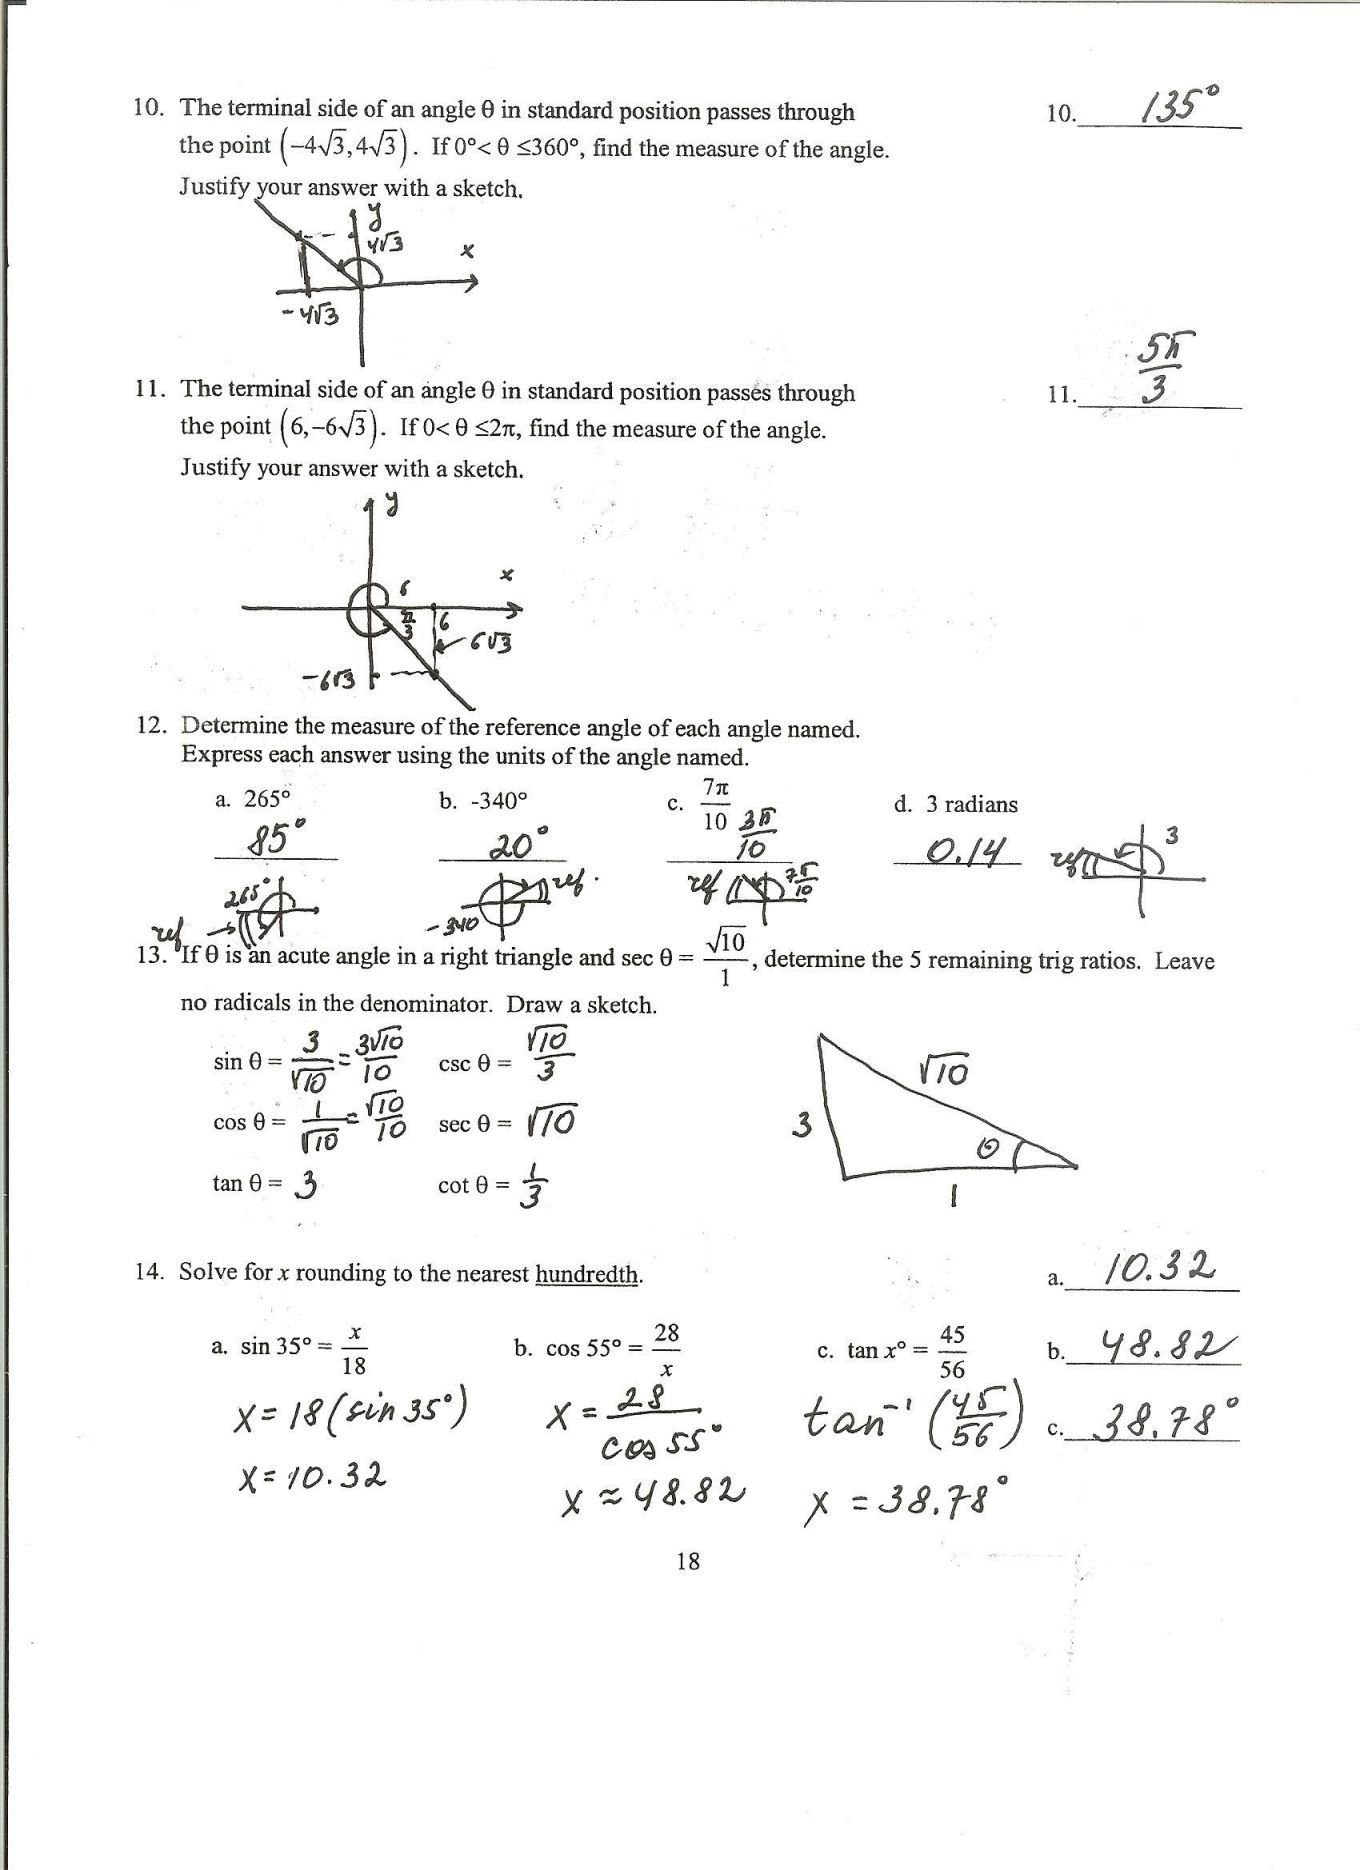 Exponent Review Worksheet Answers  Briefencounters Regarding Exponent Review Worksheet Answers